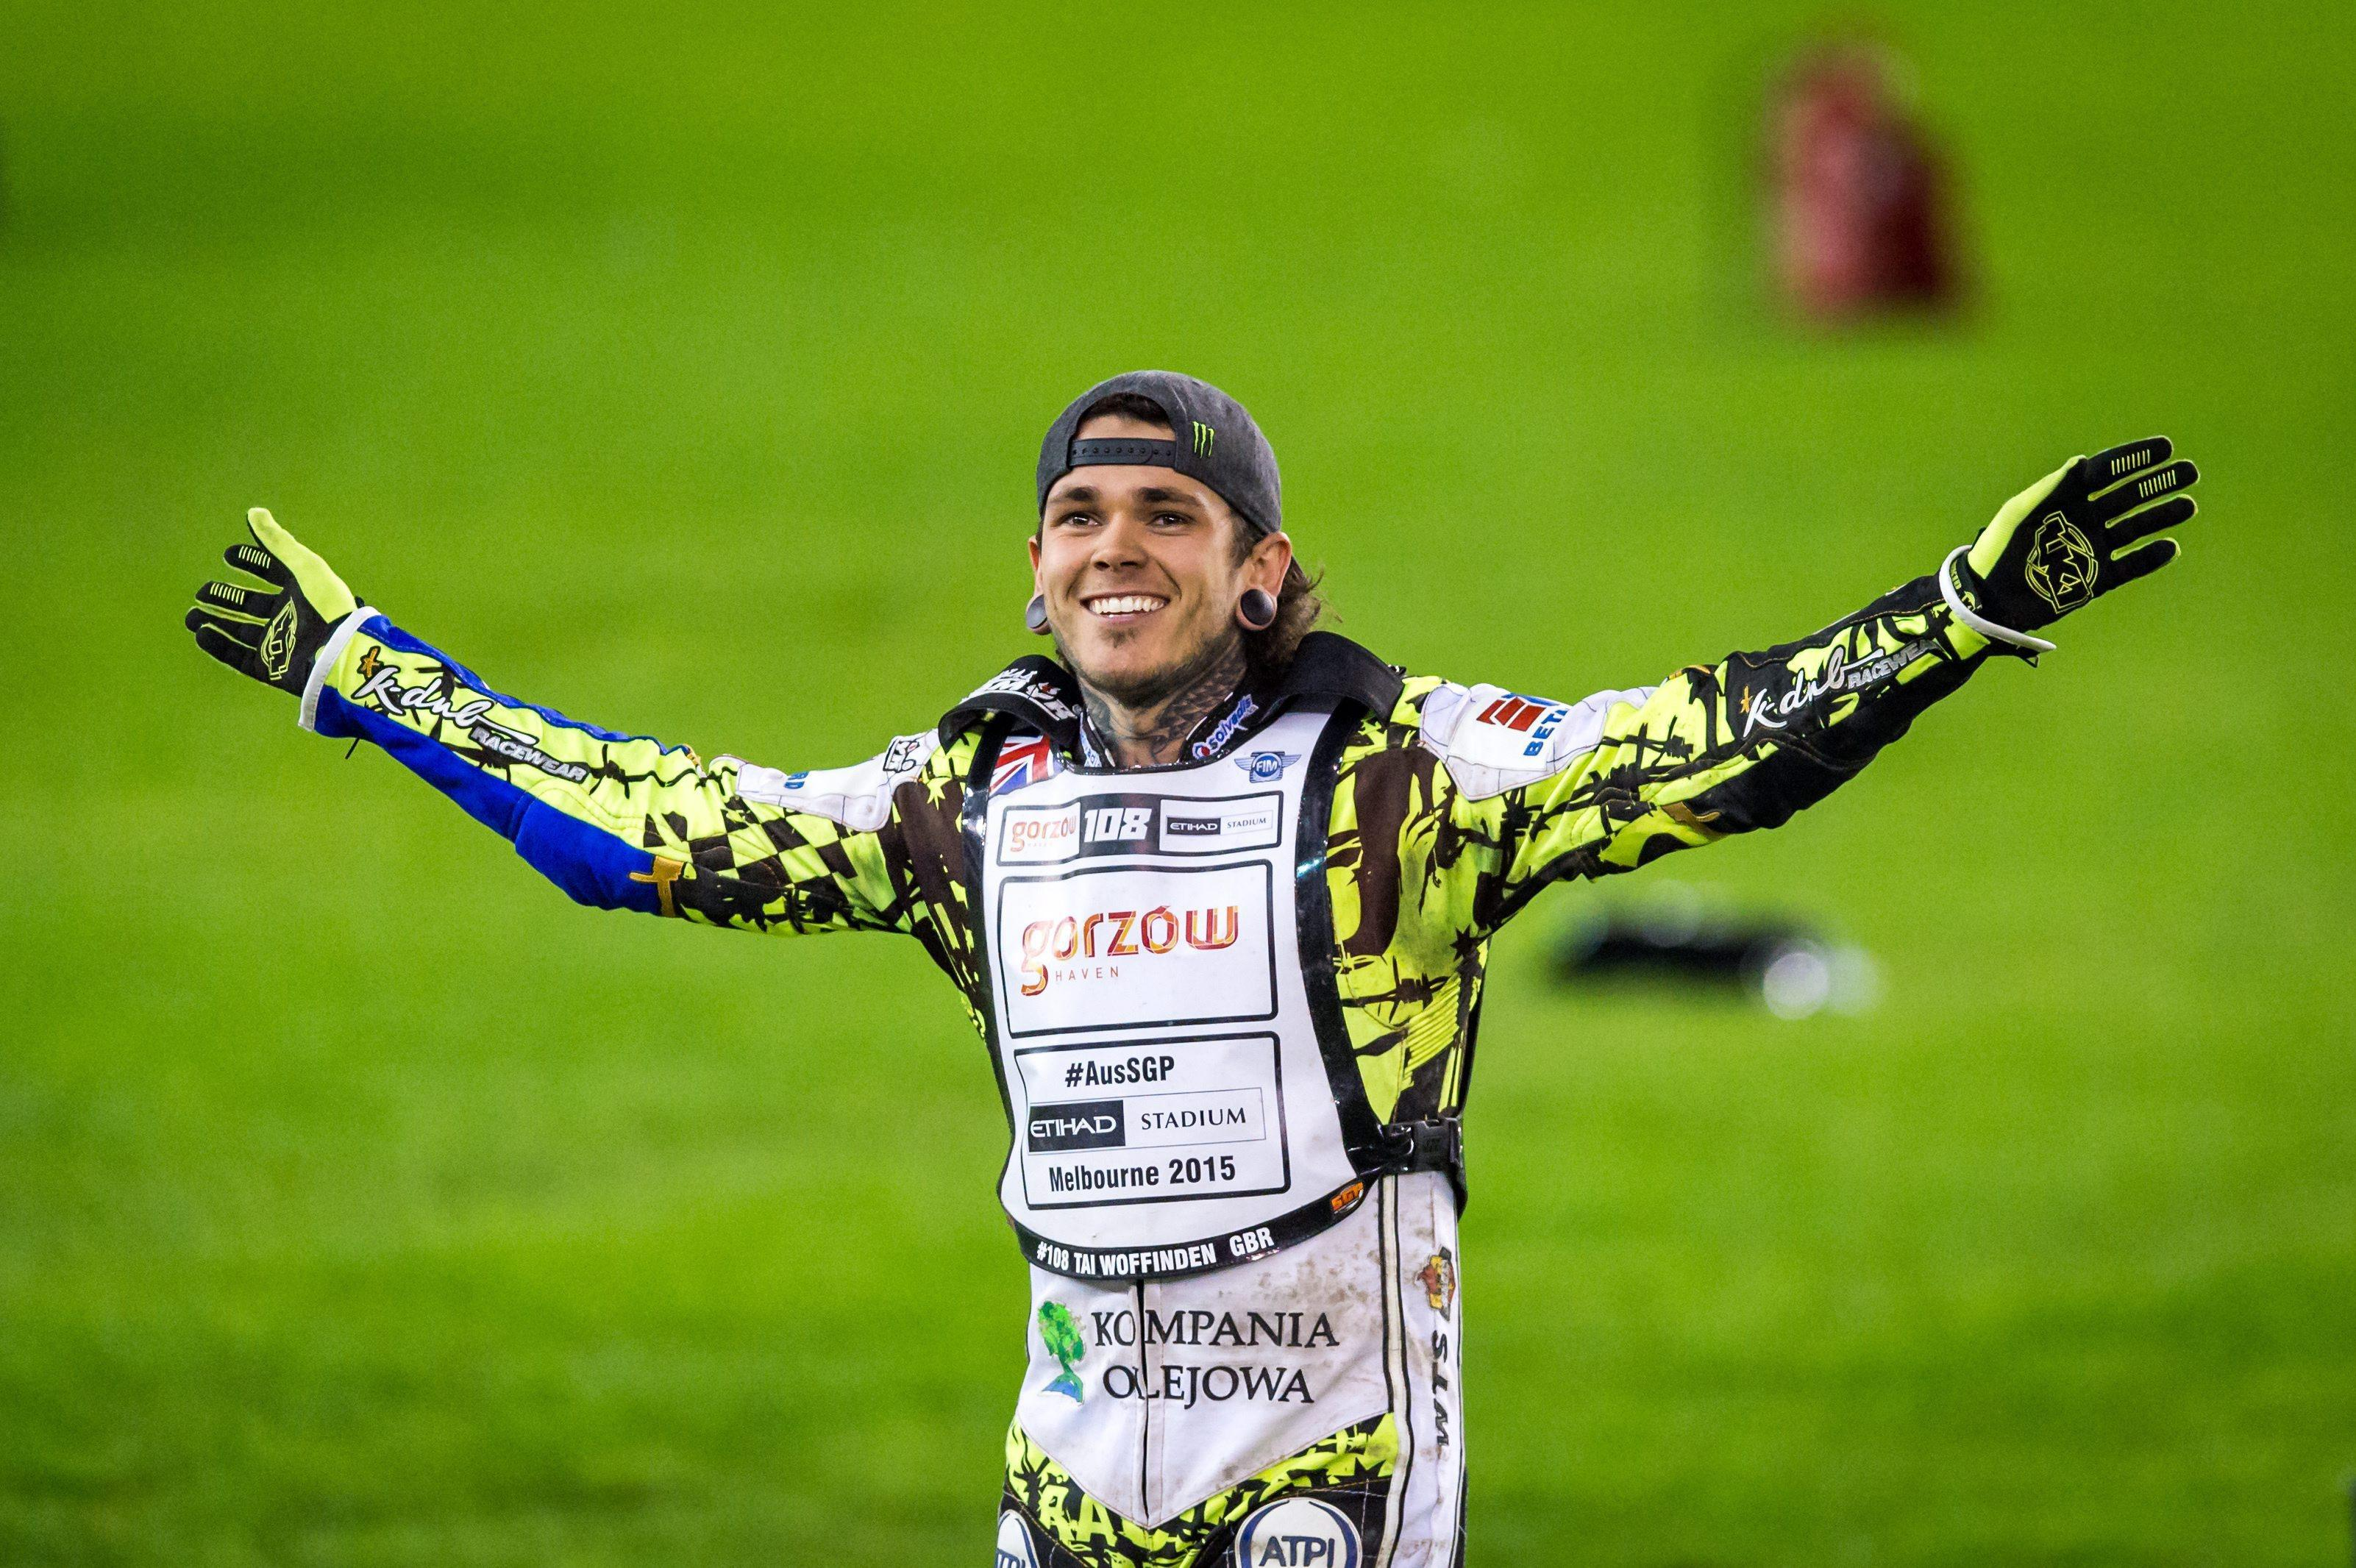 Woffinden is likely to be the star attraction